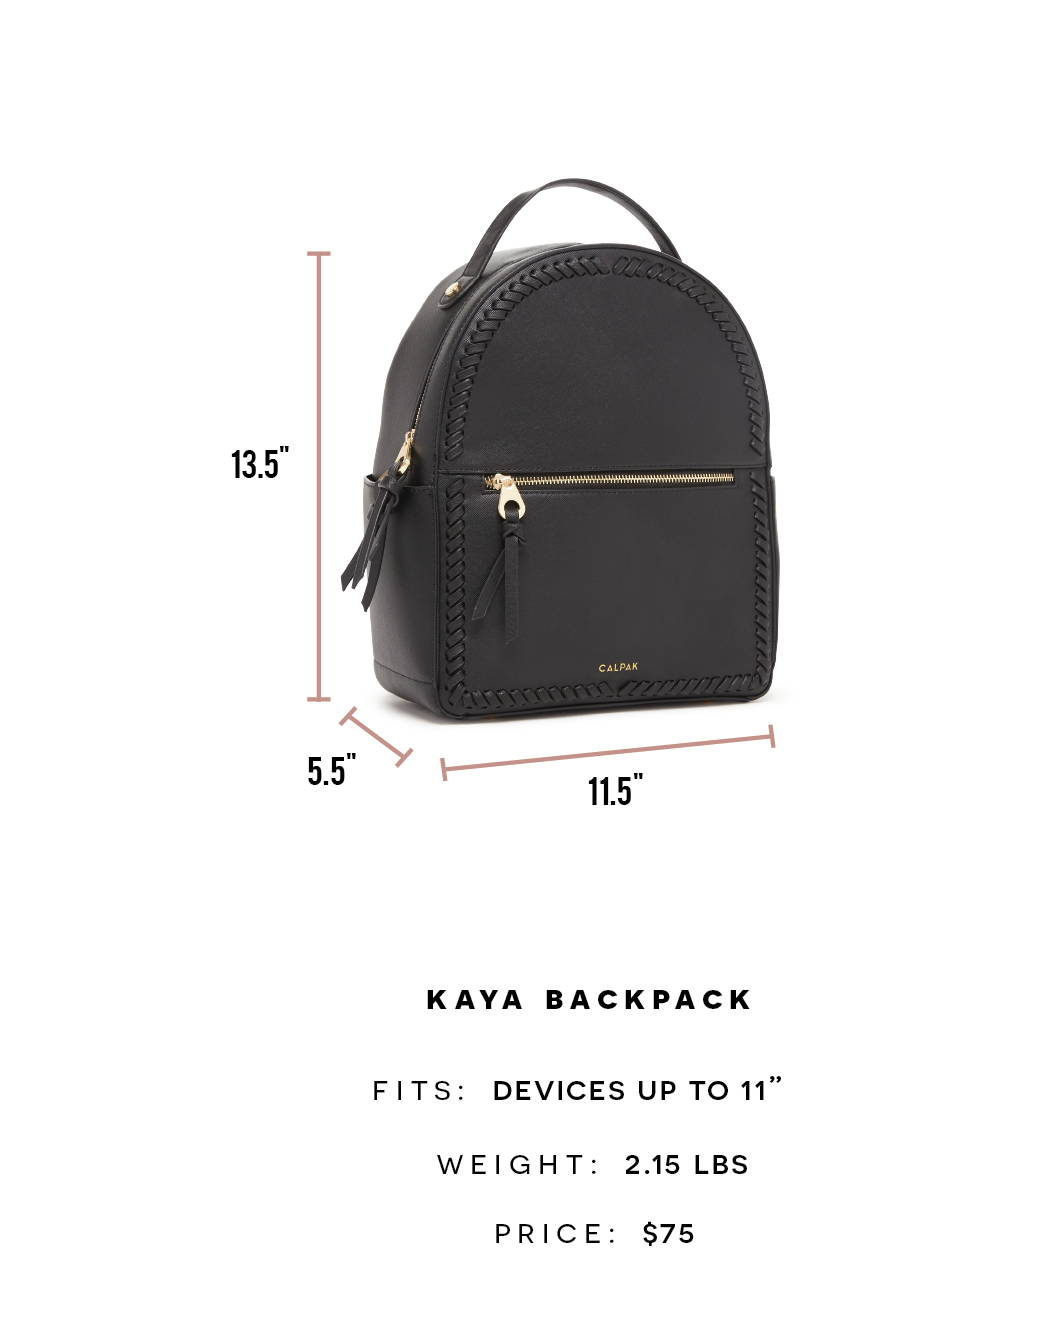 KAYA BACKPACK